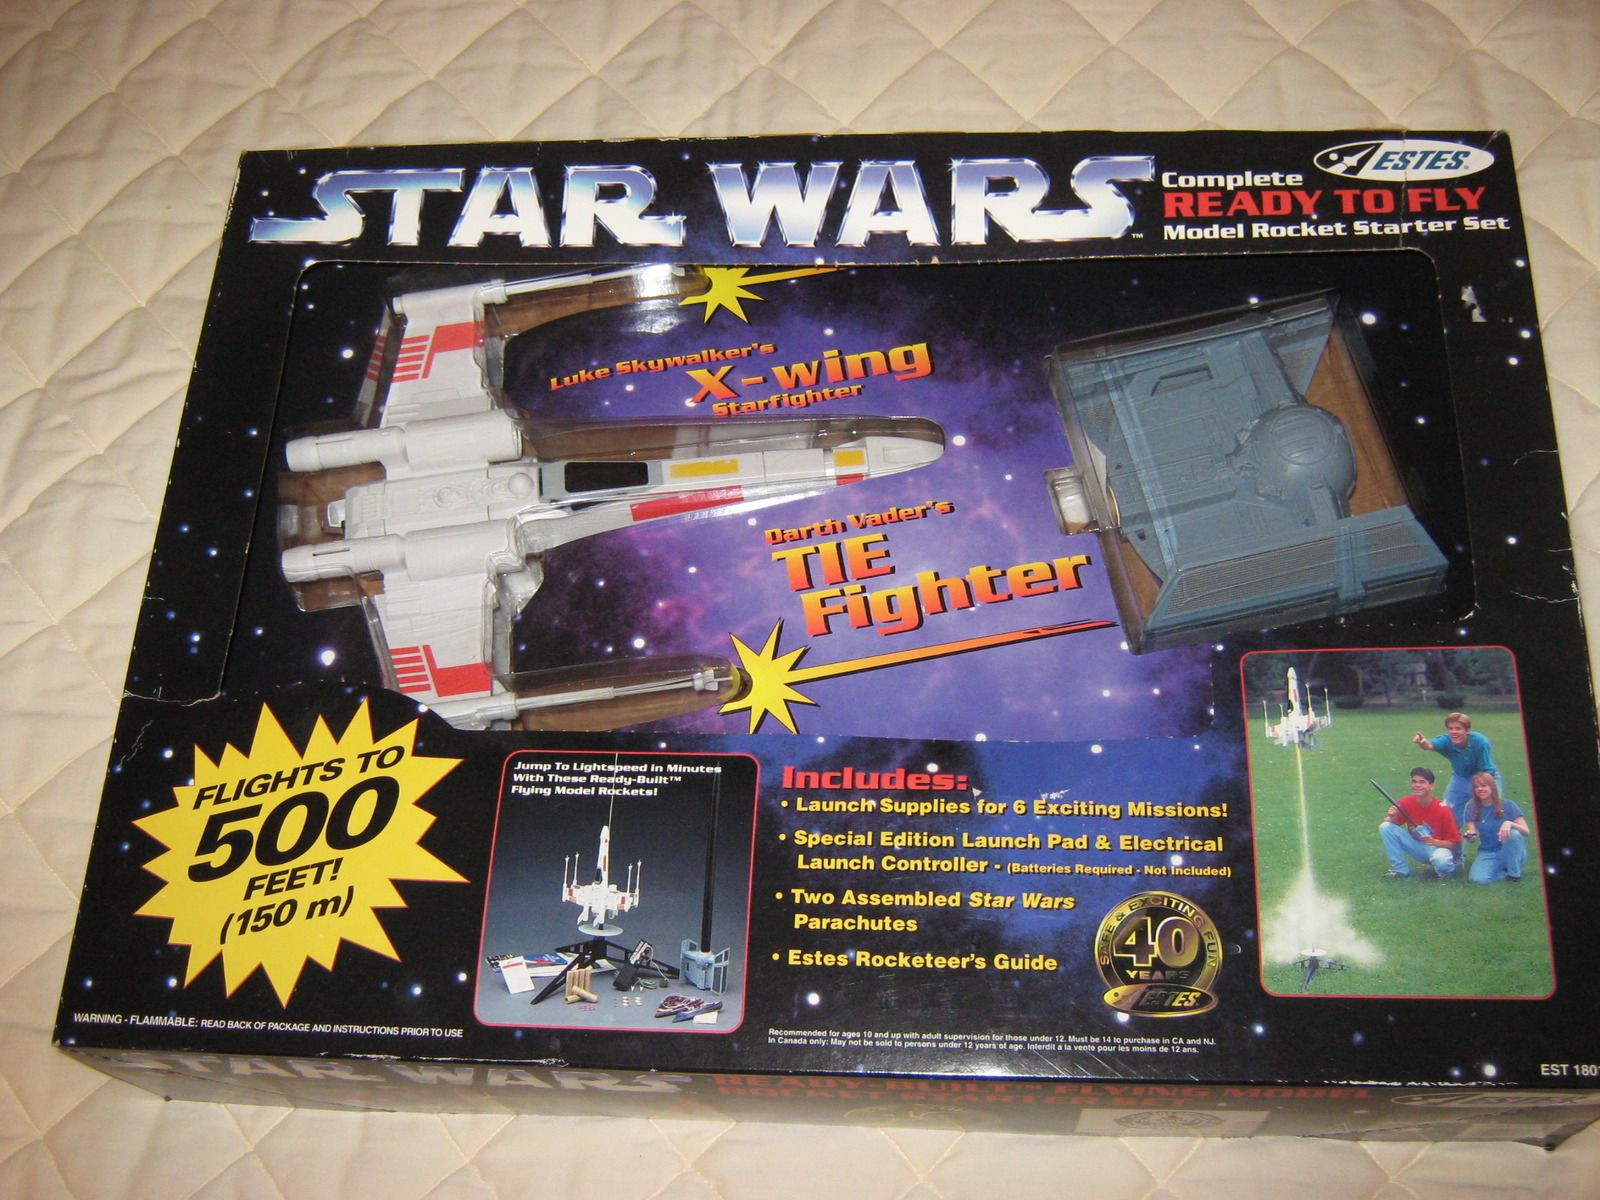 Primary image for Star Wars ready to fly model rocket starter set